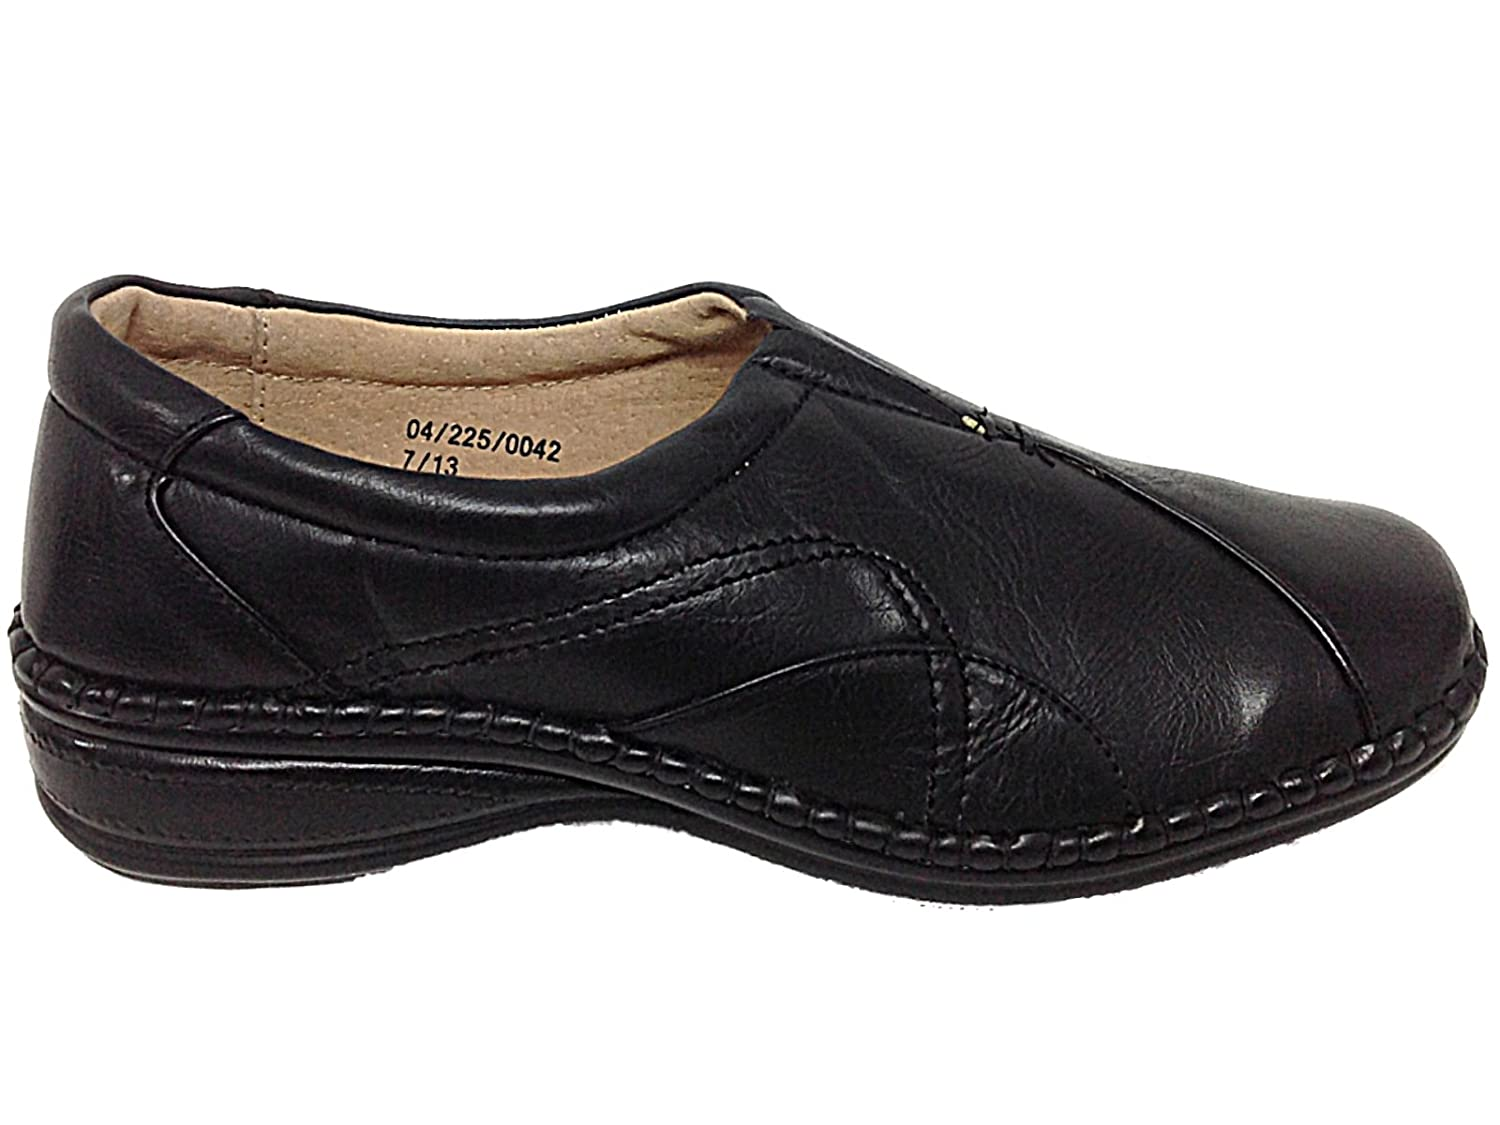 eae677c93a3 Ladies Ganstead Cushion Walk Black Faux Leather Slip On Flat Loafer Shoes  Size 3-8 (UK 6)  Amazon.co.uk  Shoes   Bags